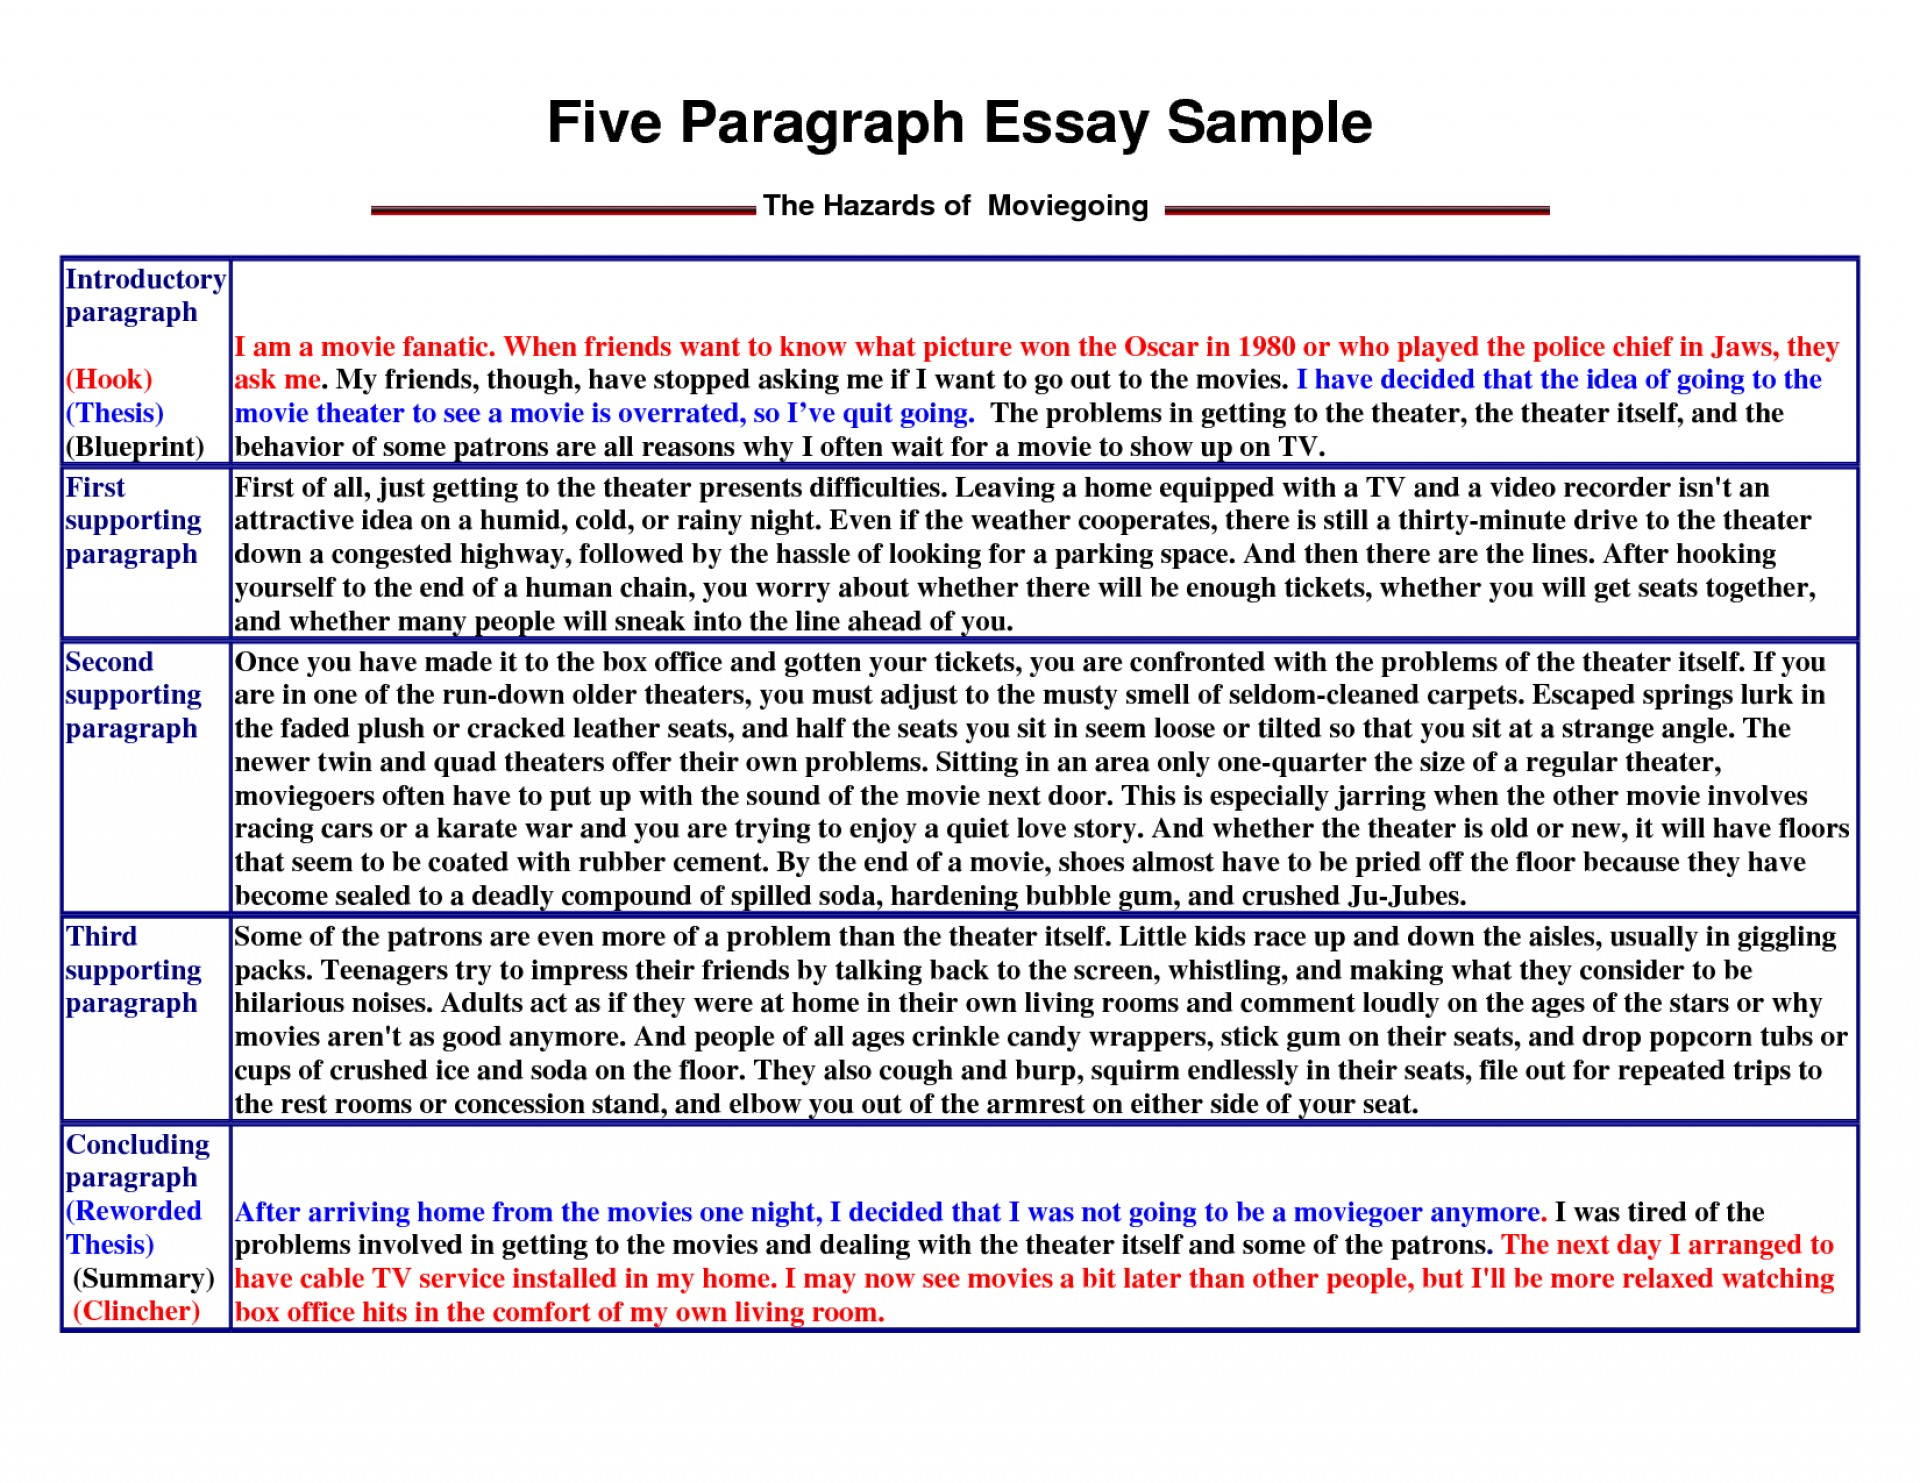 005 Opening Sentences For Essays Essay Example Unique Examples Of Good College Paragraphs Starting 1920